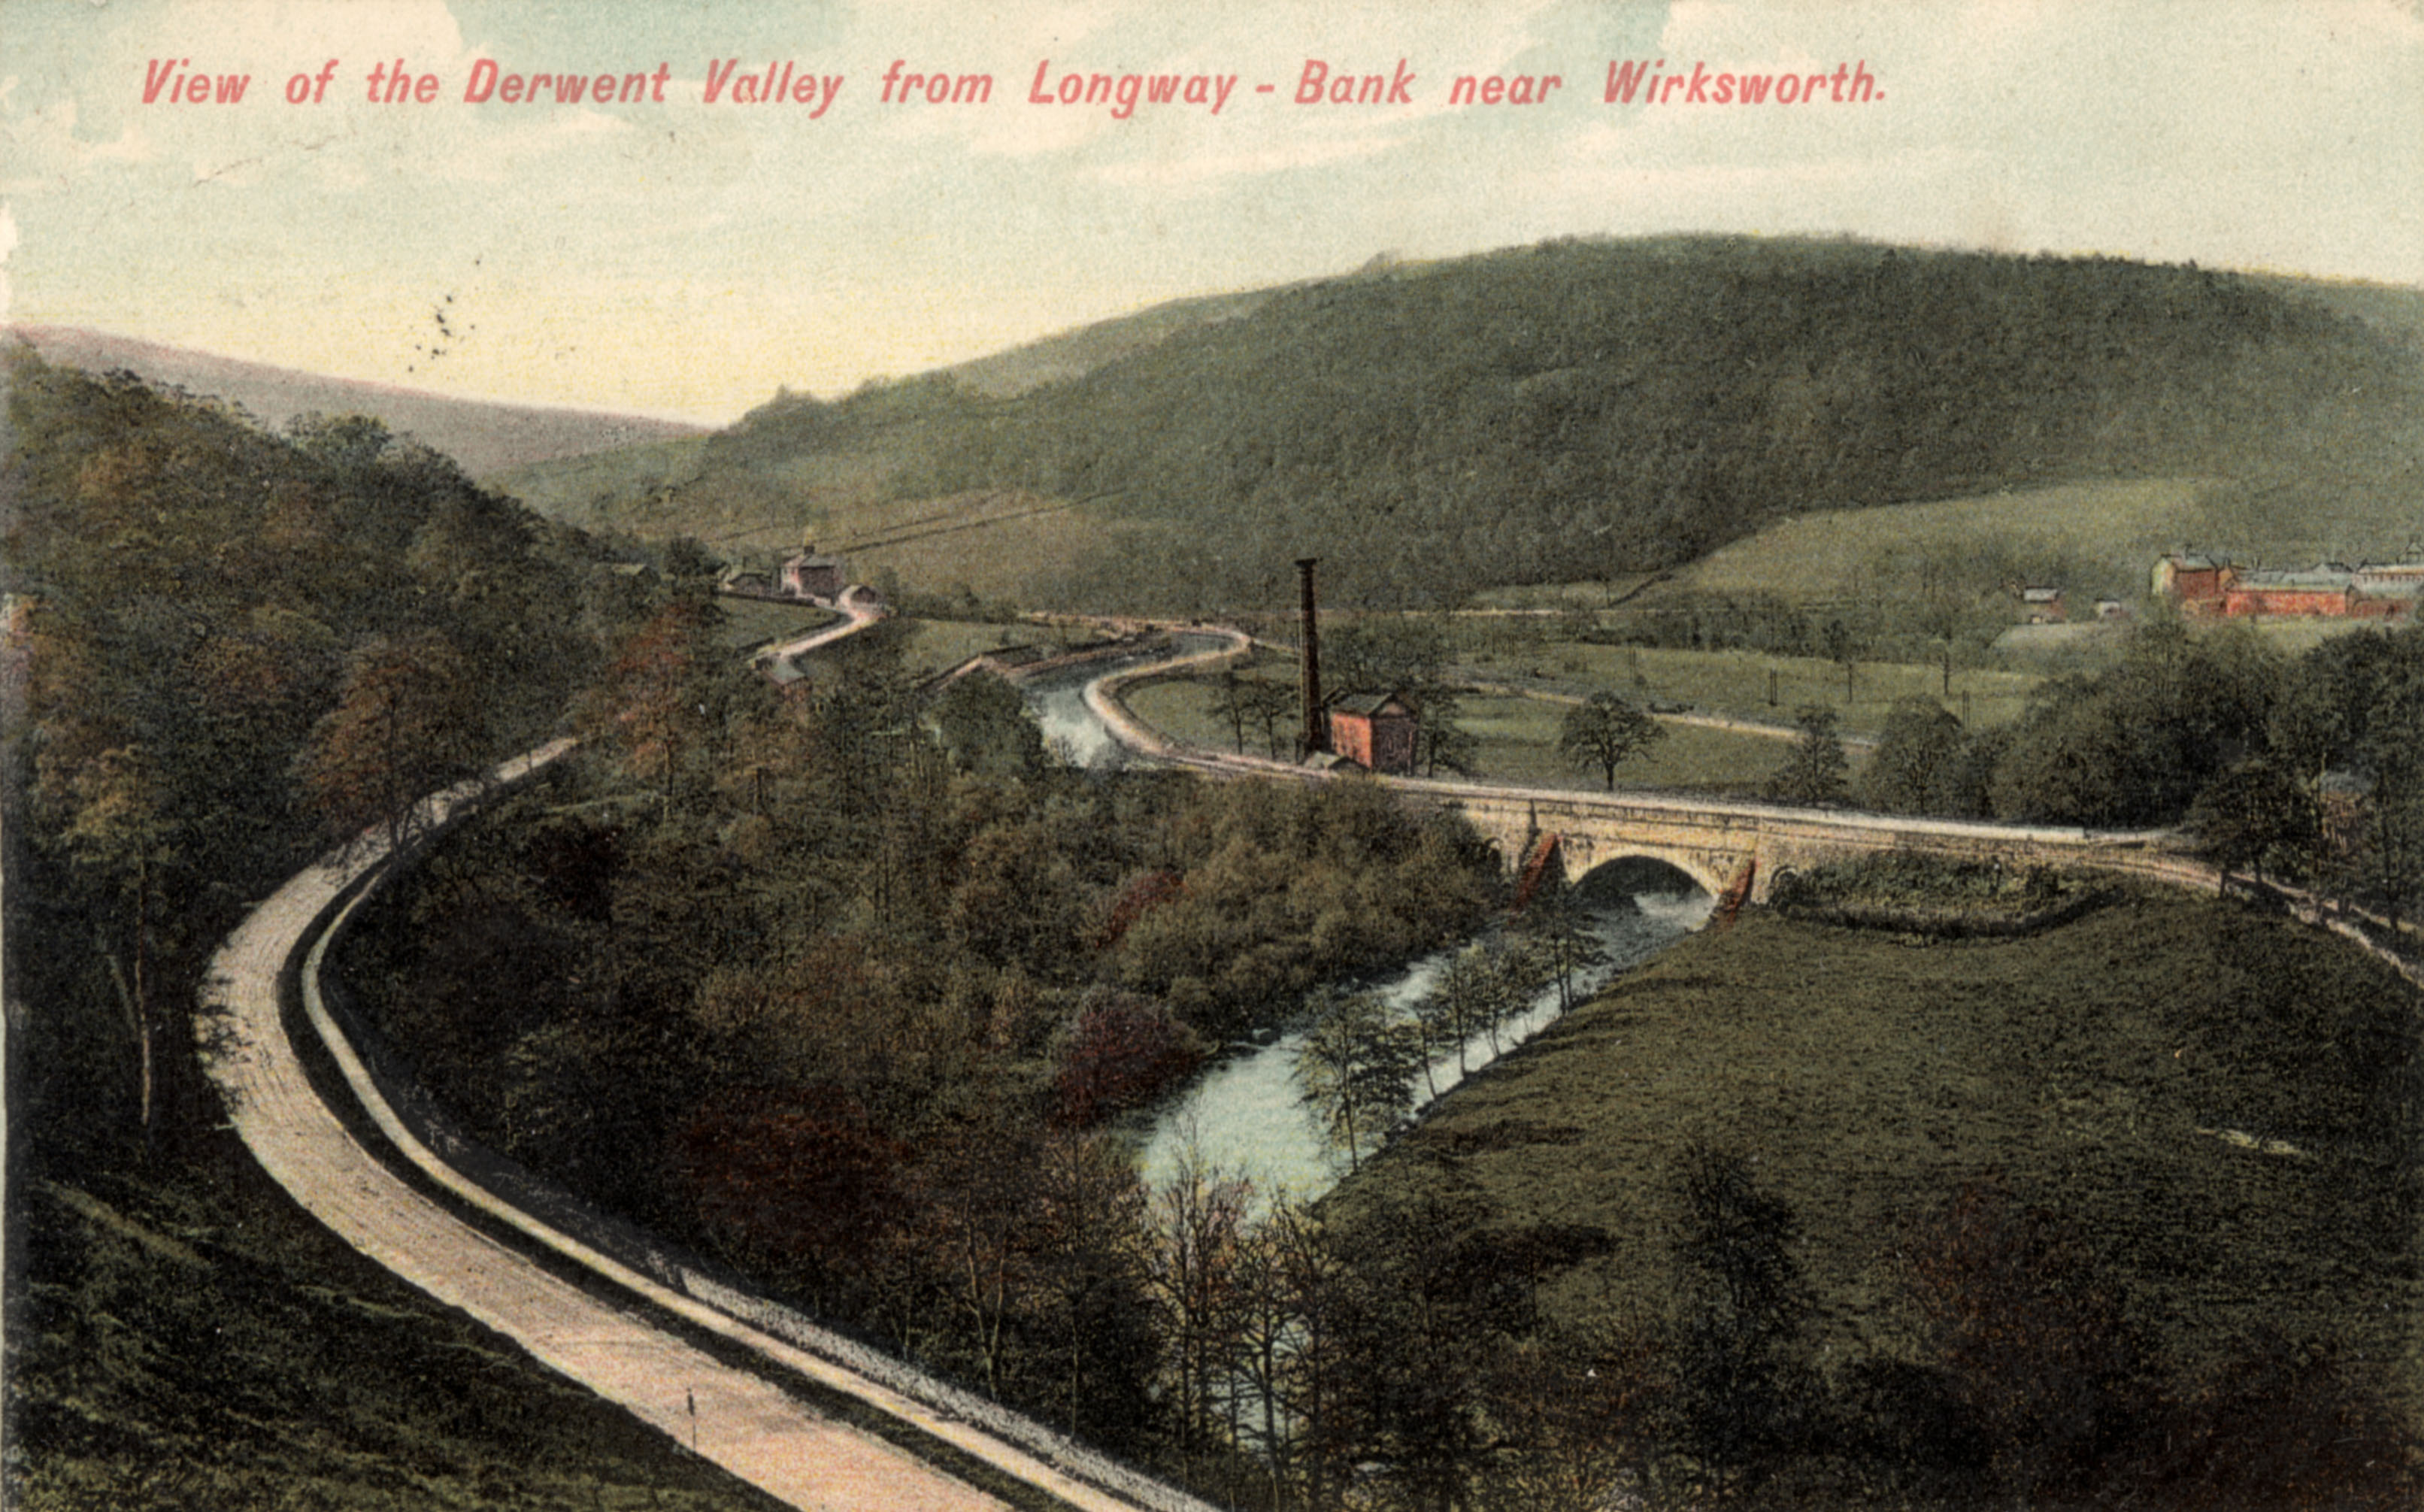 From the hill on the opposite side of the A6, Derwent Aqueduct with its buttresses is clearly seen with Leawood Pump to the left and High Peak Junction further to the left.